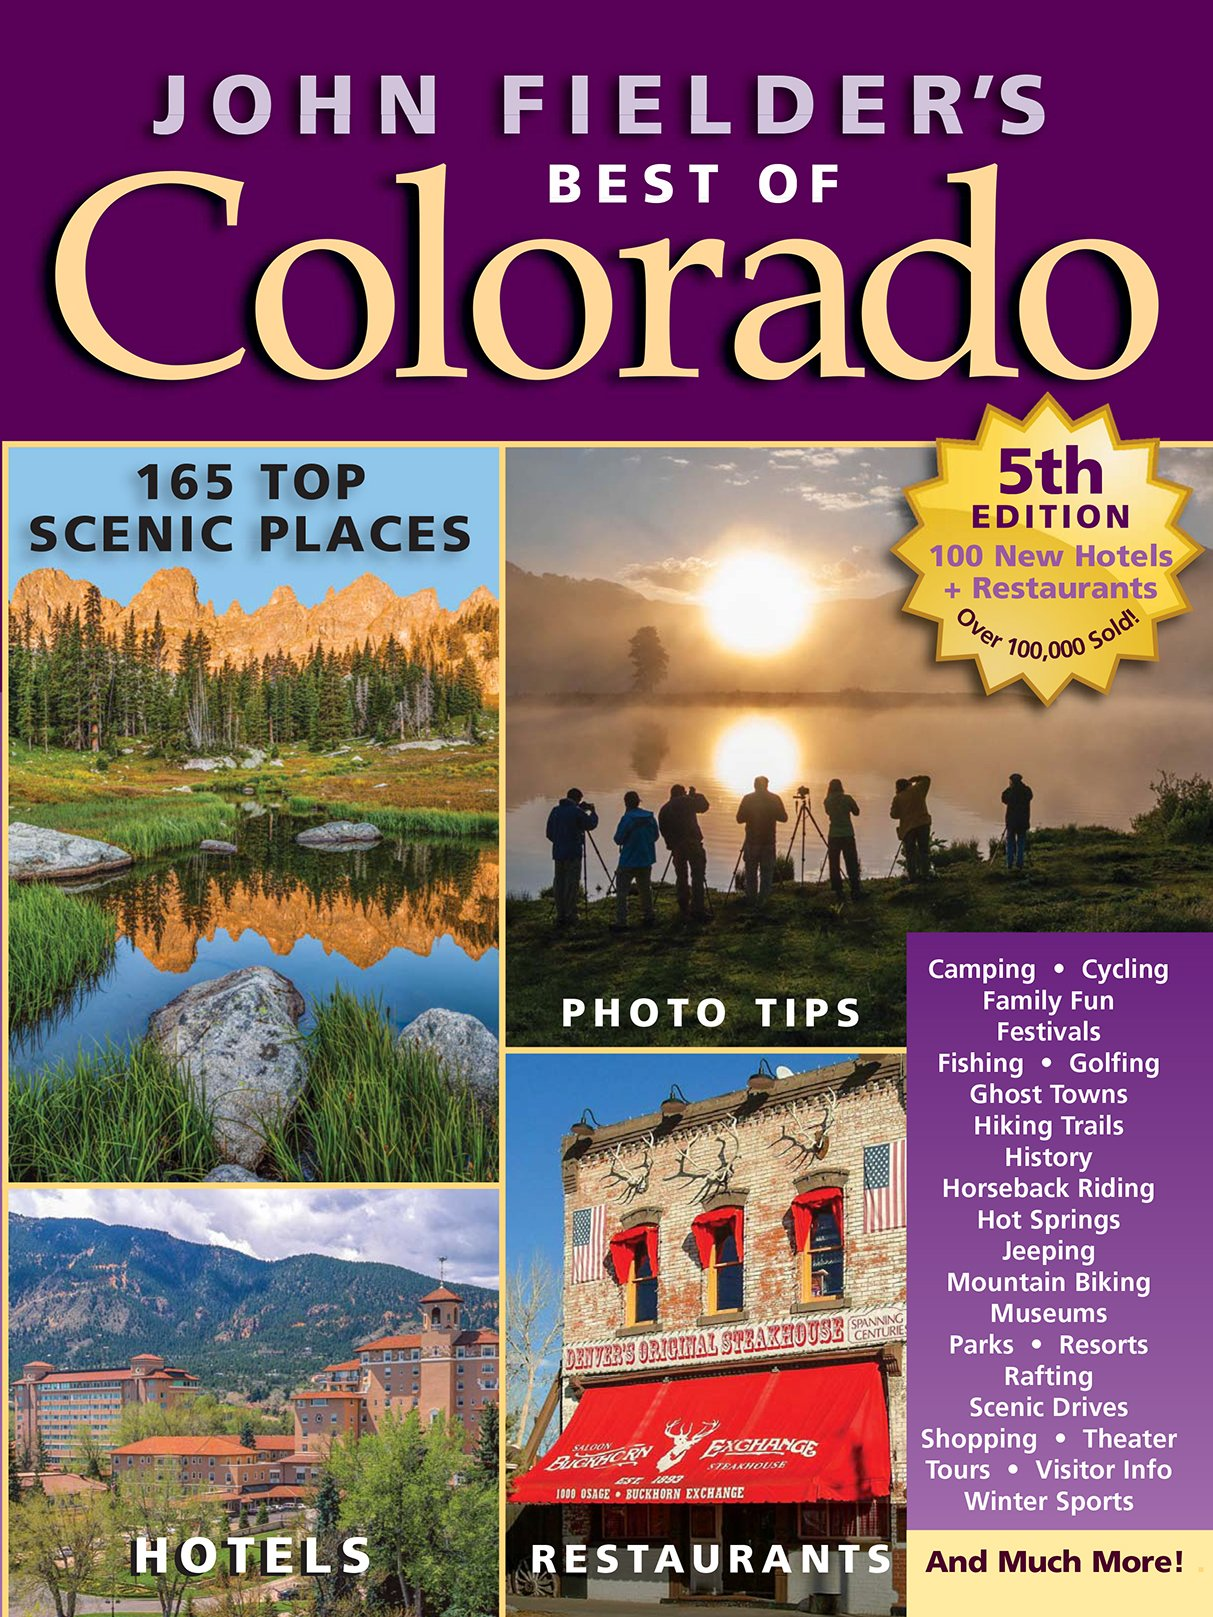 Image OfJohn Fielder's Best Of Colorado, 5th Edition